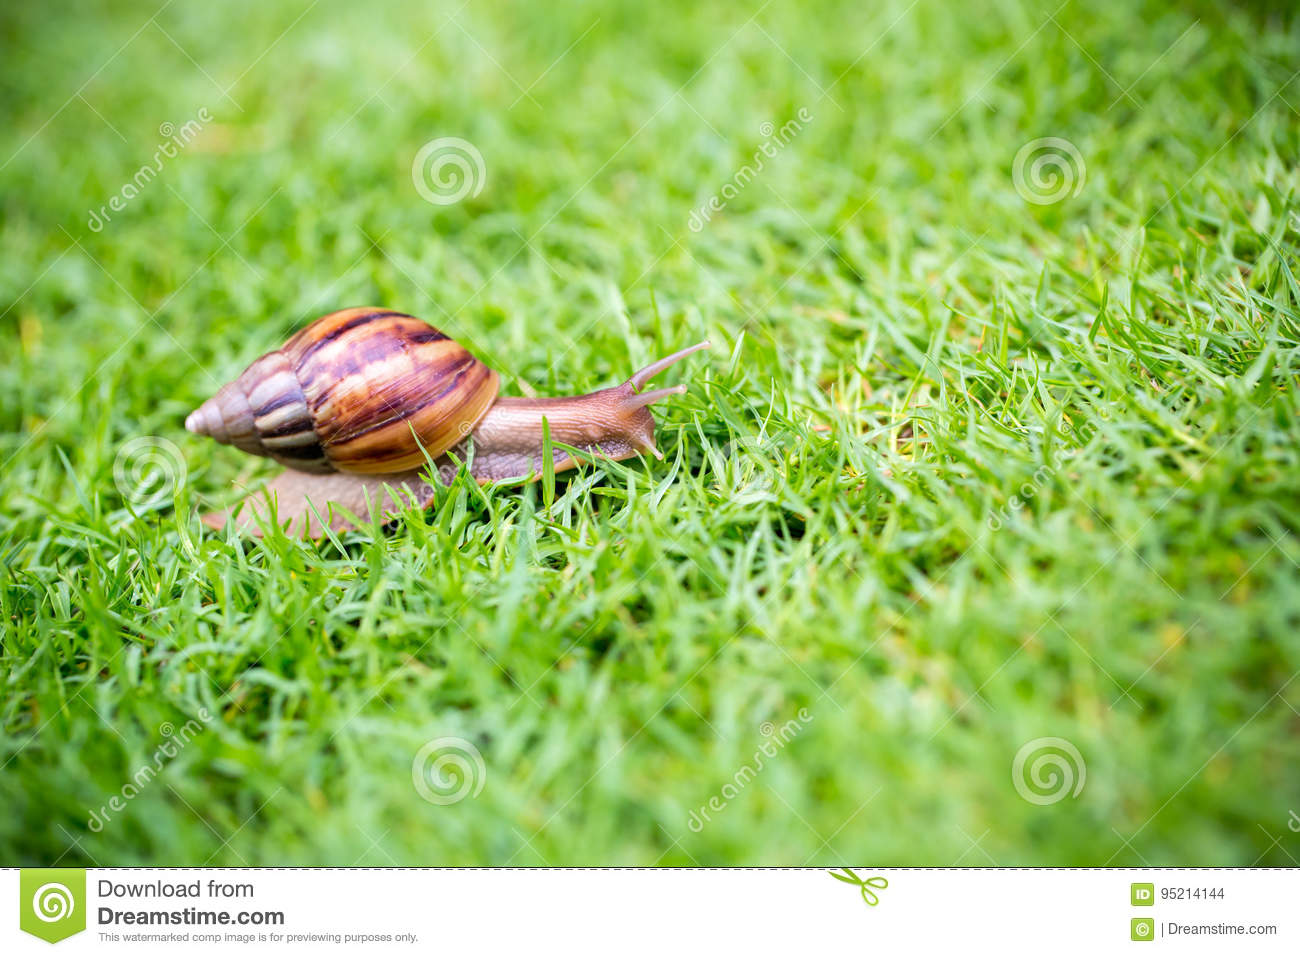 Download A Snail With Its Shell House Moving Slowly On Green Grass. Stock Photo - Image of closeup, moving: 95214144